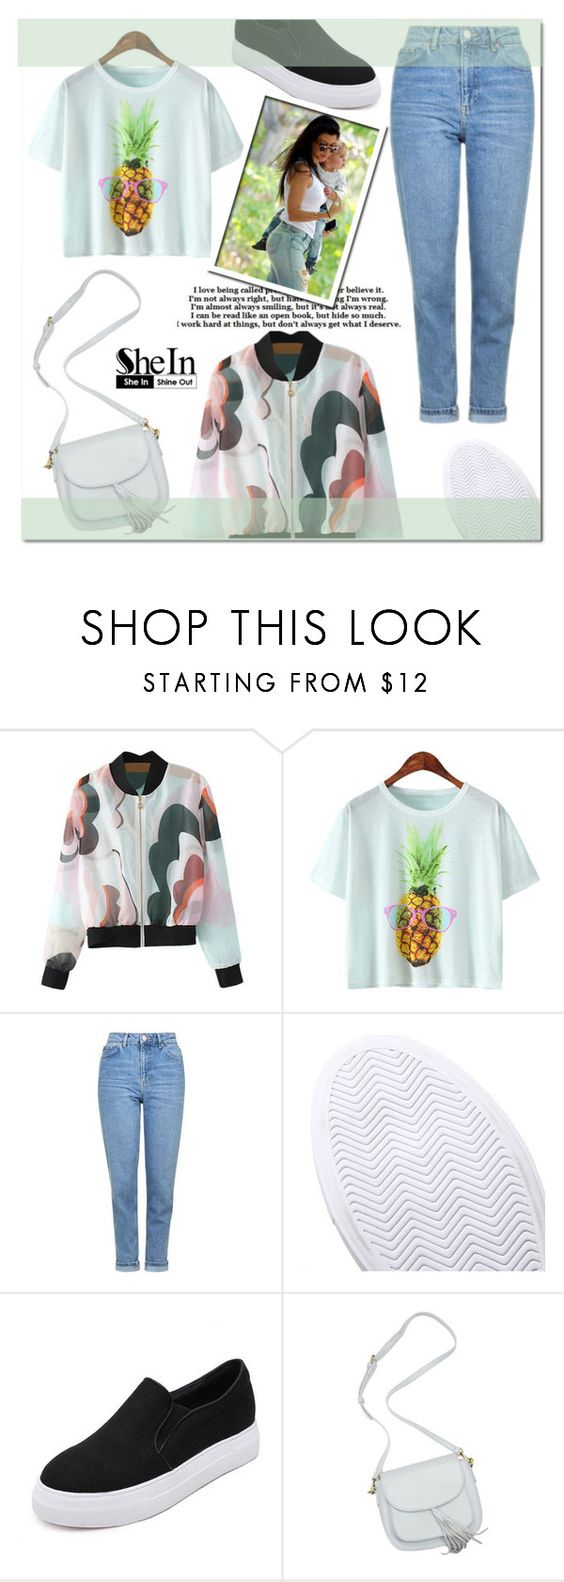 """""""SheIn 2"""" by mini-kitty ❤ liked on Polyvore featuring Ananas, Topshop and shein"""